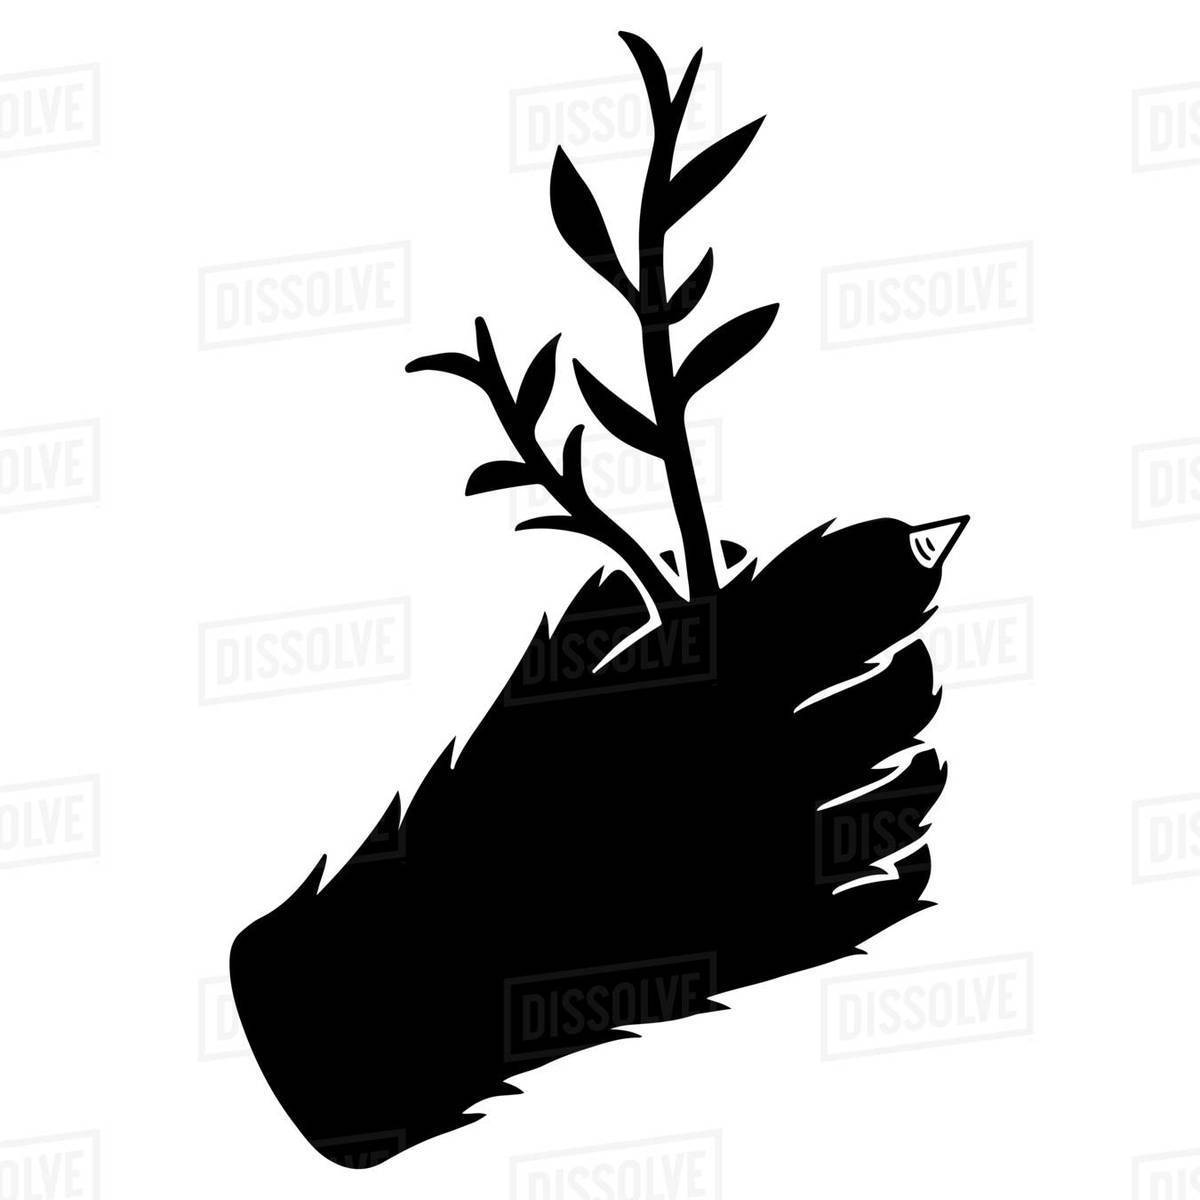 Illustration of a cat's paw holding twig against white background Royalty-free stock photo